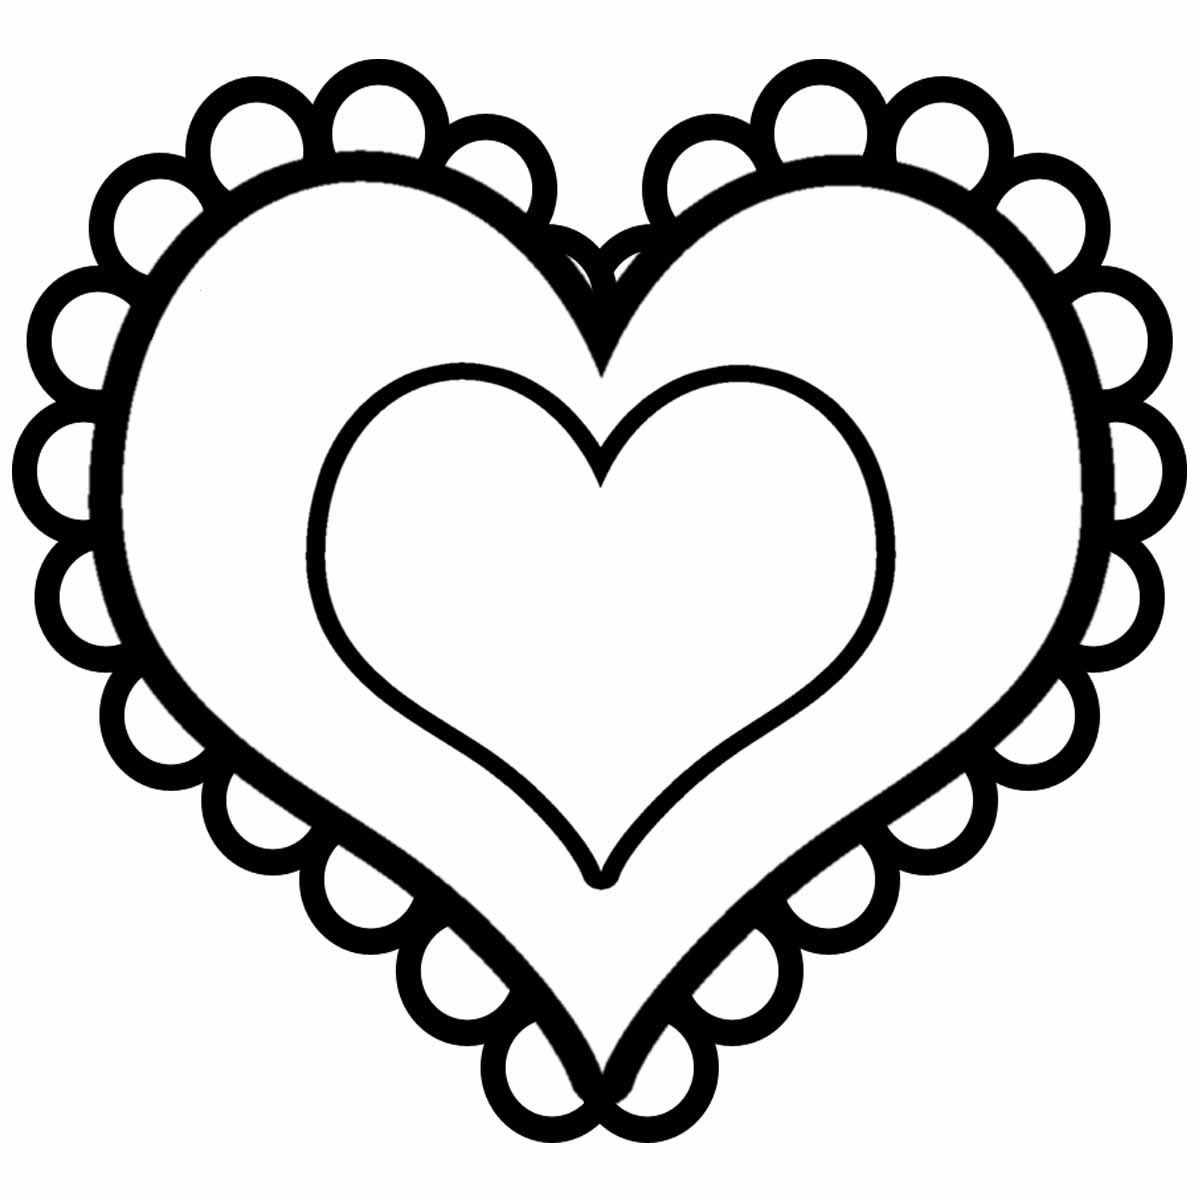 Free Valentine Cross Cliparts, Download Free Clip Art, Free.